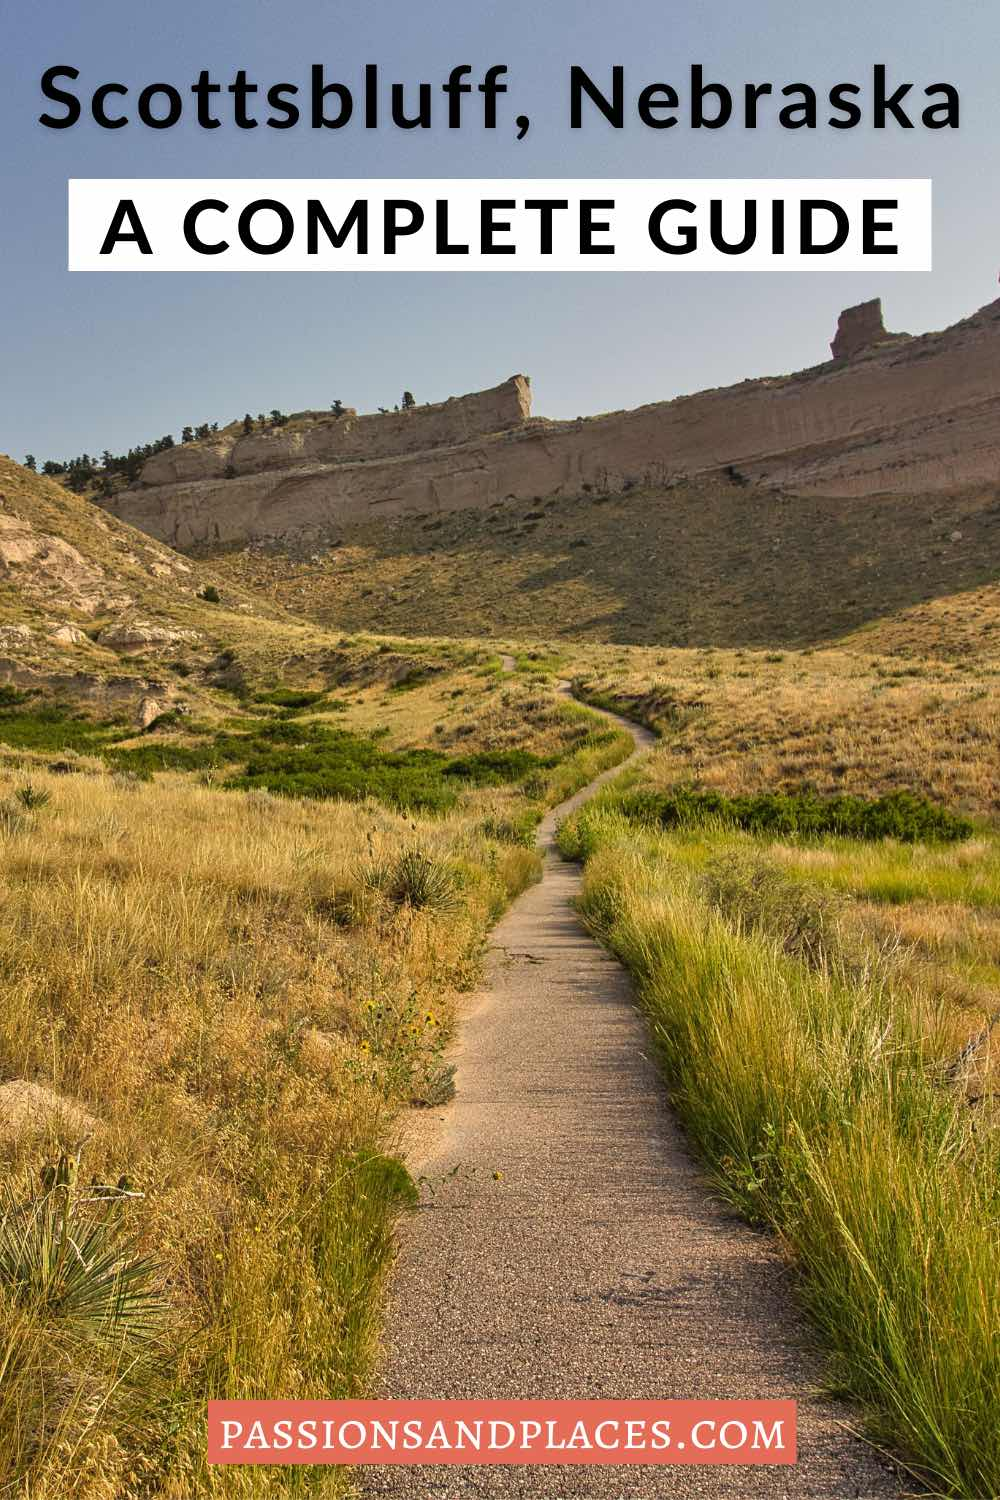 This Scottsbluff, Nebraska, travel guide has everything you should know about visiting the biggest town in the Nebraska Panhandle! Learn what to do at Scotts Bluff National Monument, find the best hotels and restaurants in Scottsbluff, and get ideas for fun day trips. Scottsbluff is a great road trip stop, and this is the best of it! #nebraska #scottsbluff #scottsbluffnationalmonument